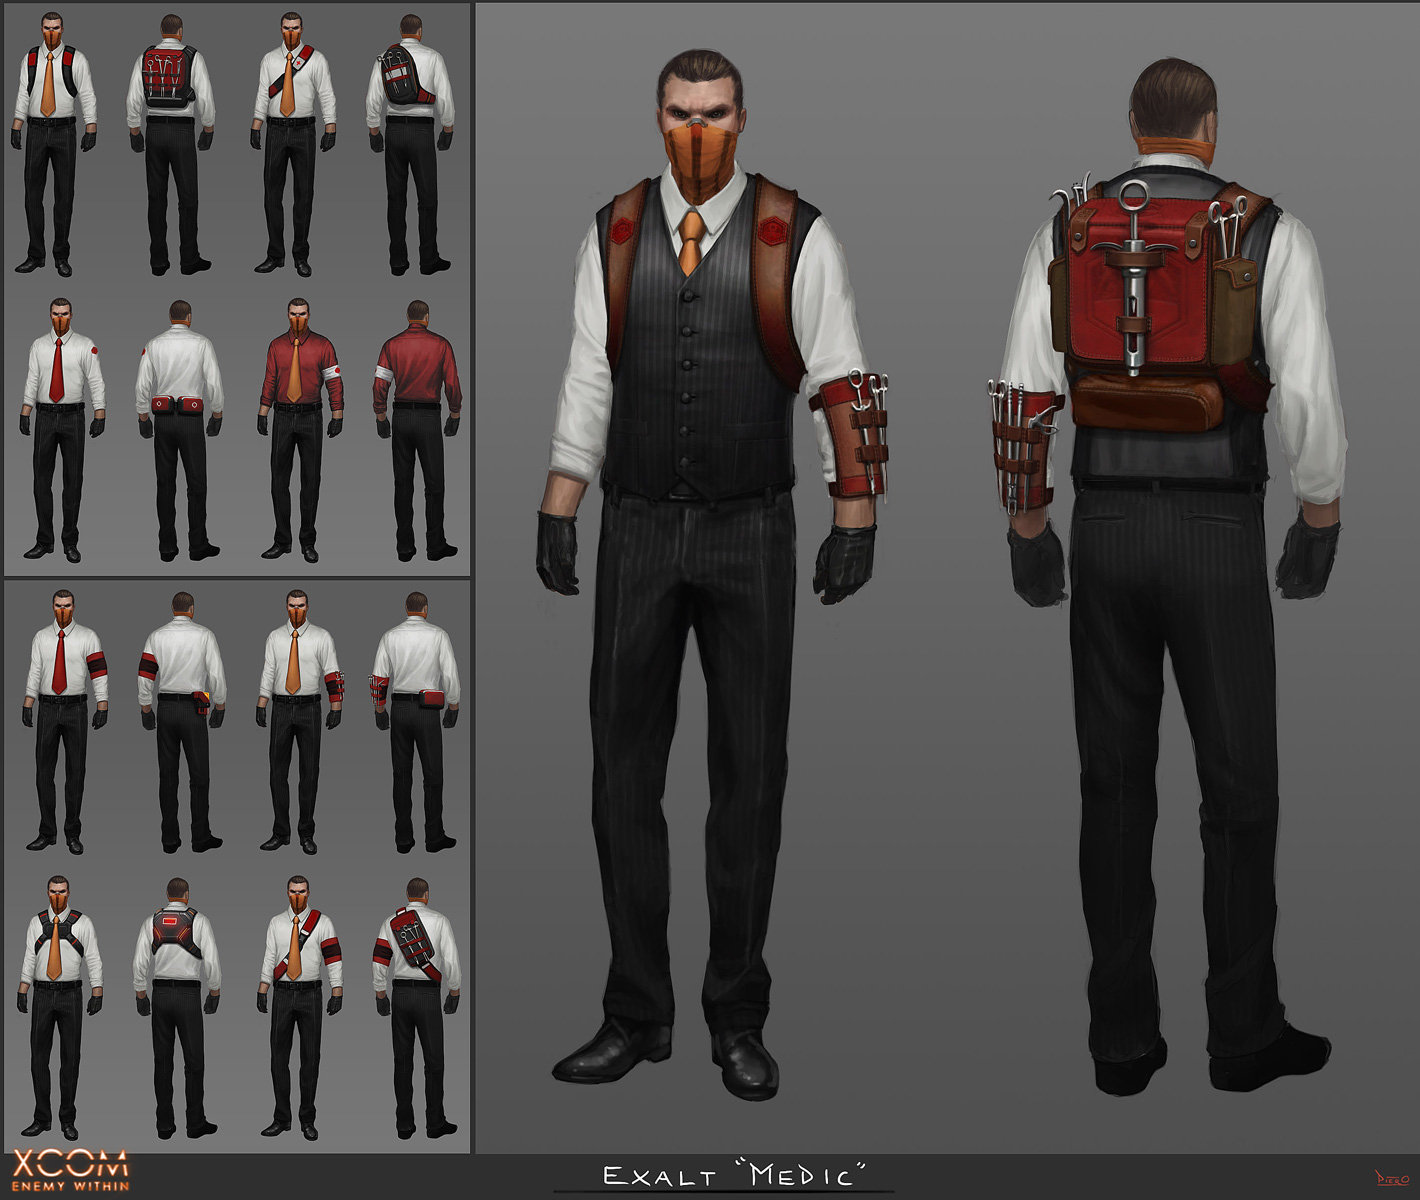 XCOM Enemy Within Concept ArtXcom Enemy Within Concept Art